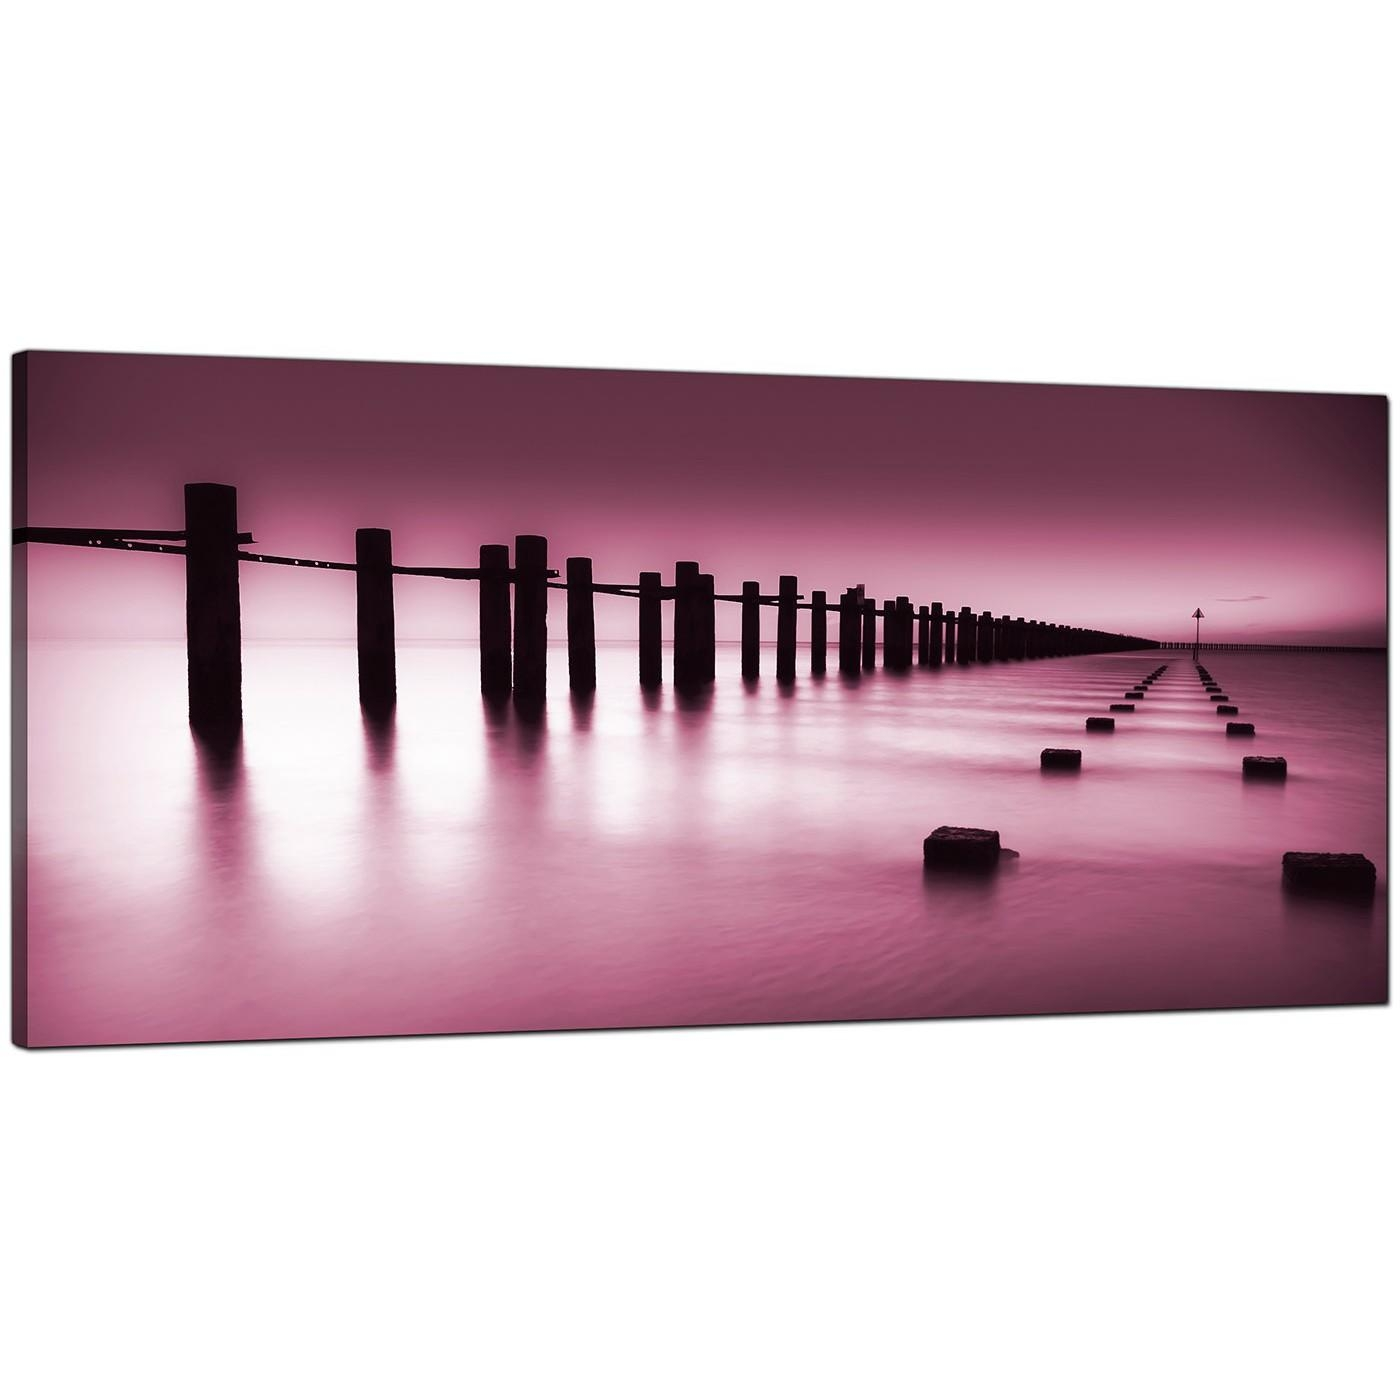 Modern Plum Canvas Wall Art Of The Sea Within Plum Coloured Wall Art (View 11 of 20)